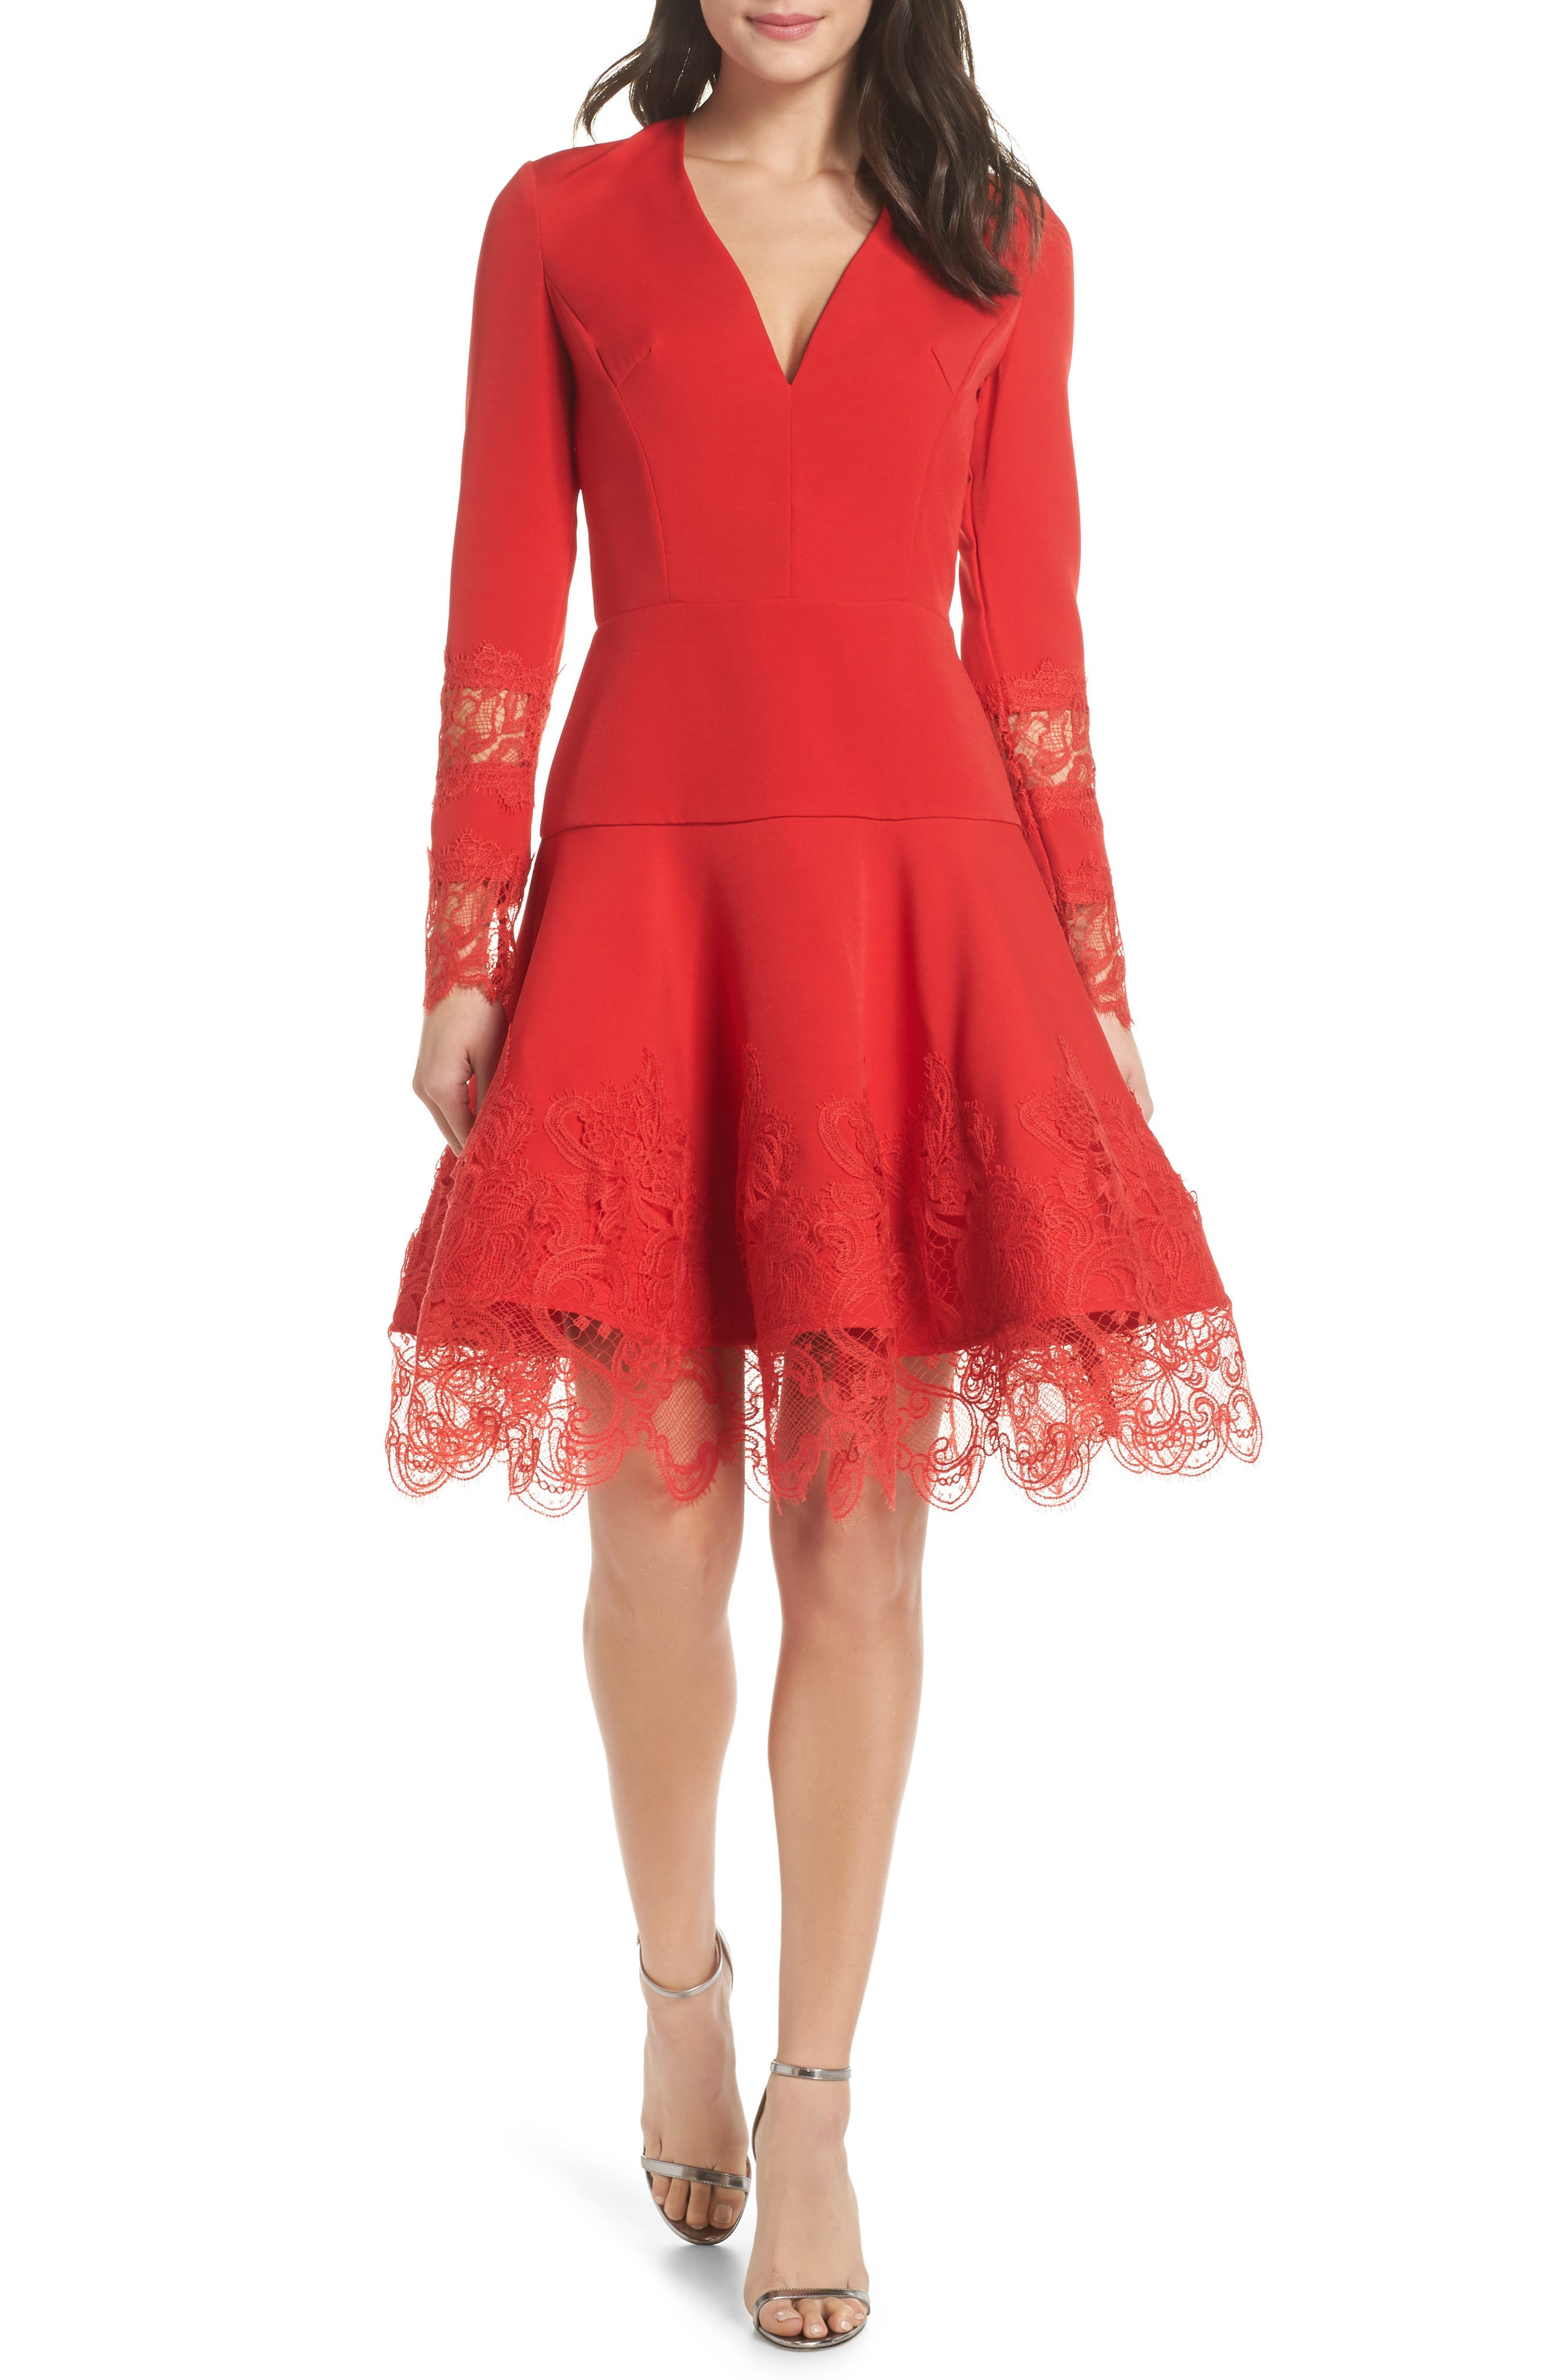 BRONX AND BANCO Antonia Fit & Flare Dress in Red